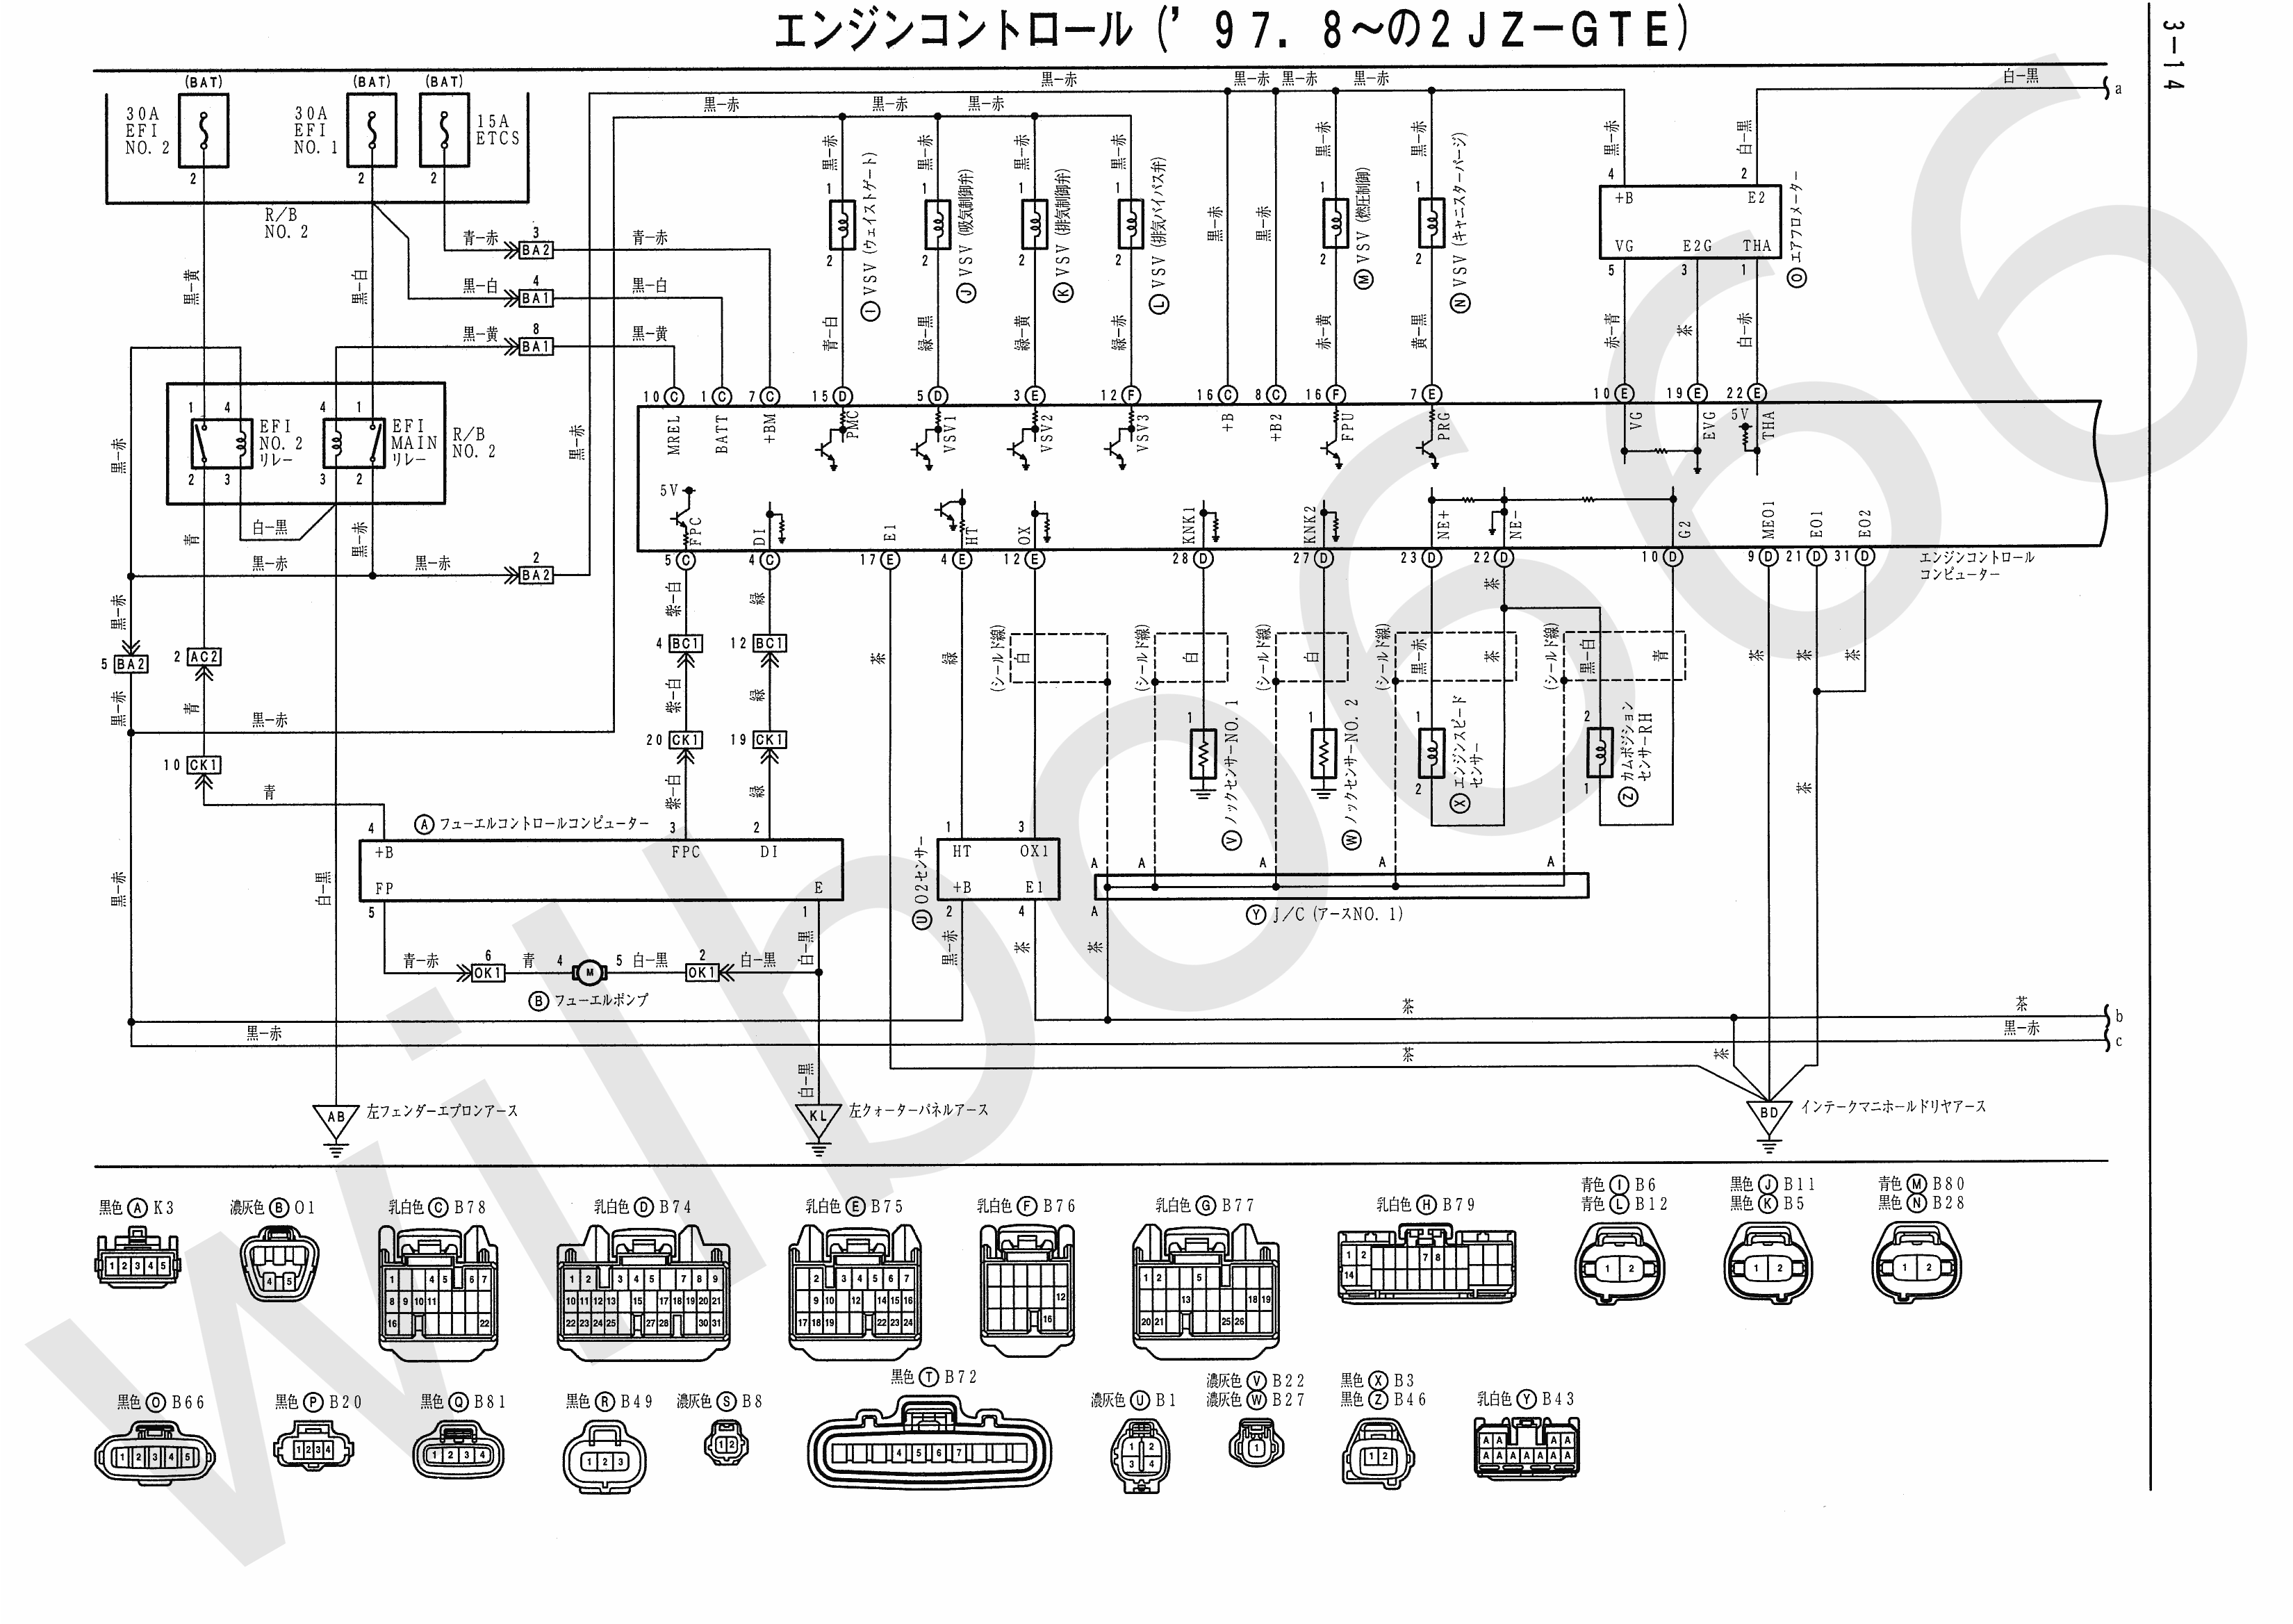 JZA80 Electrical Wiring Diagram 6742505 3 14 wilbo666 2jz gte vvti jza80 supra engine wiring 2jz wiring diagram at gsmportal.co